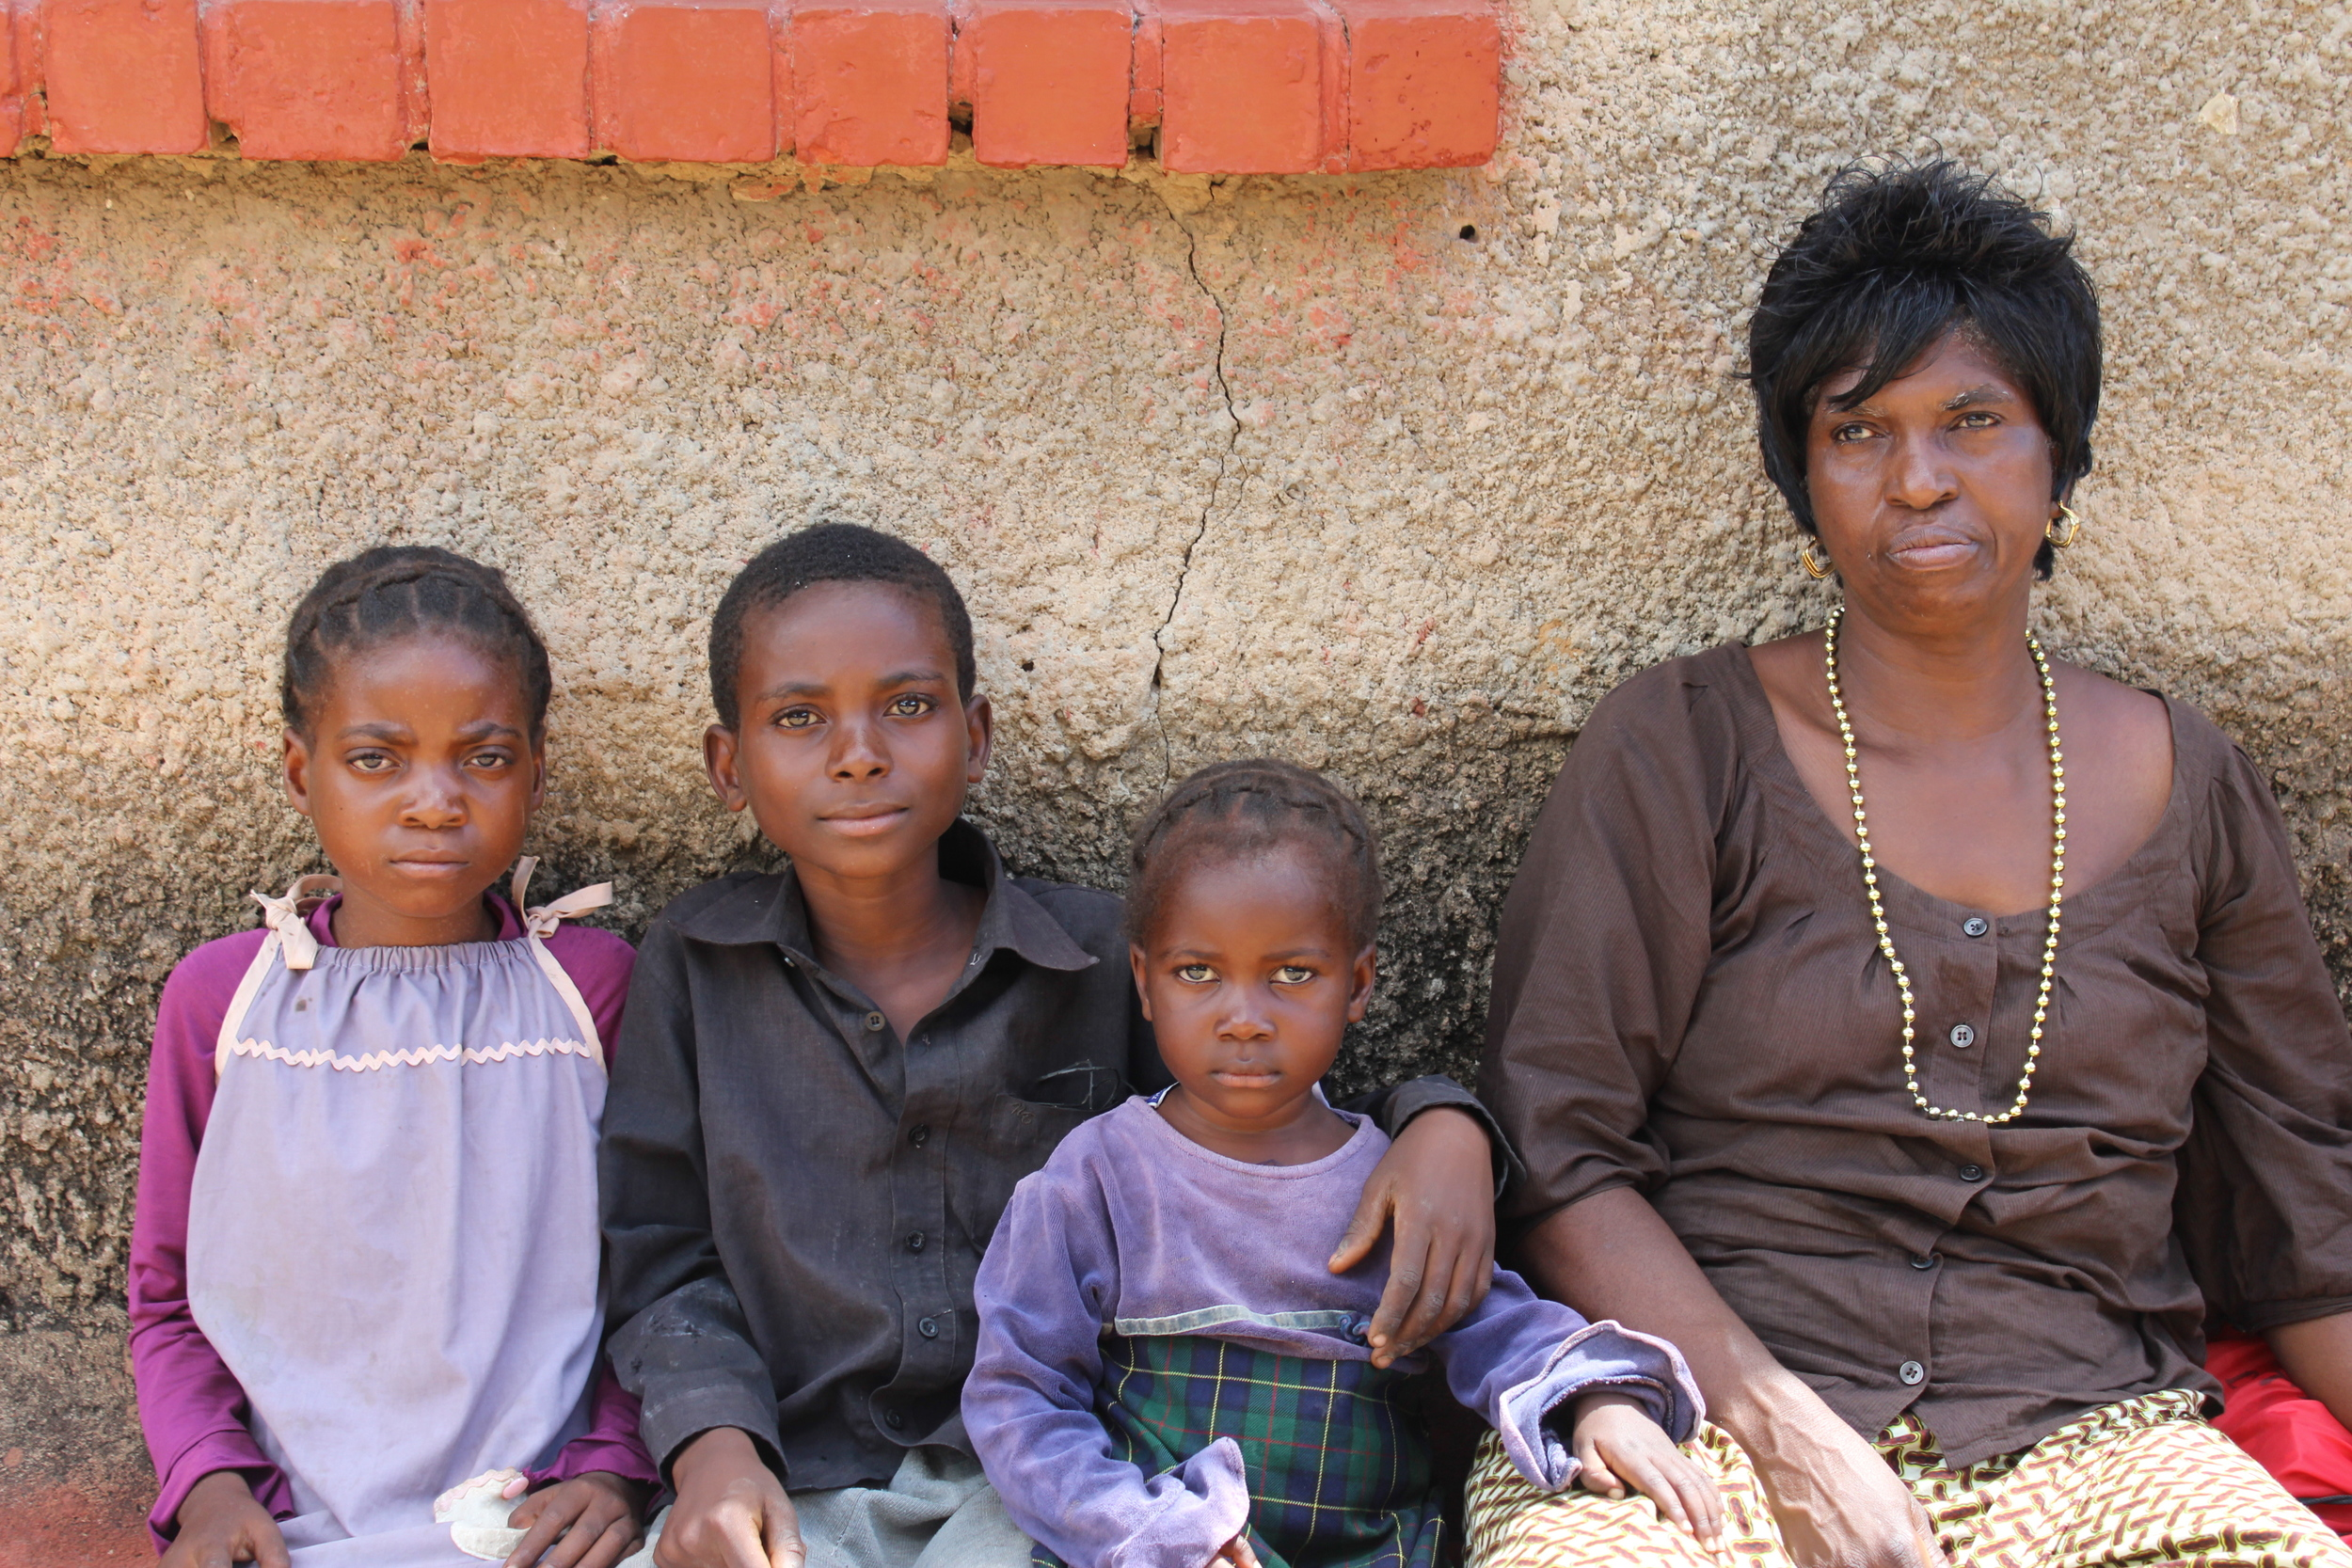 Three siblings and their care worker, Dorothea, who ensures that they are safe when alone, fed while their mother is away looking for work, and receive medical attention when they are sick. They look to her for help and she is their supporter and advocate.